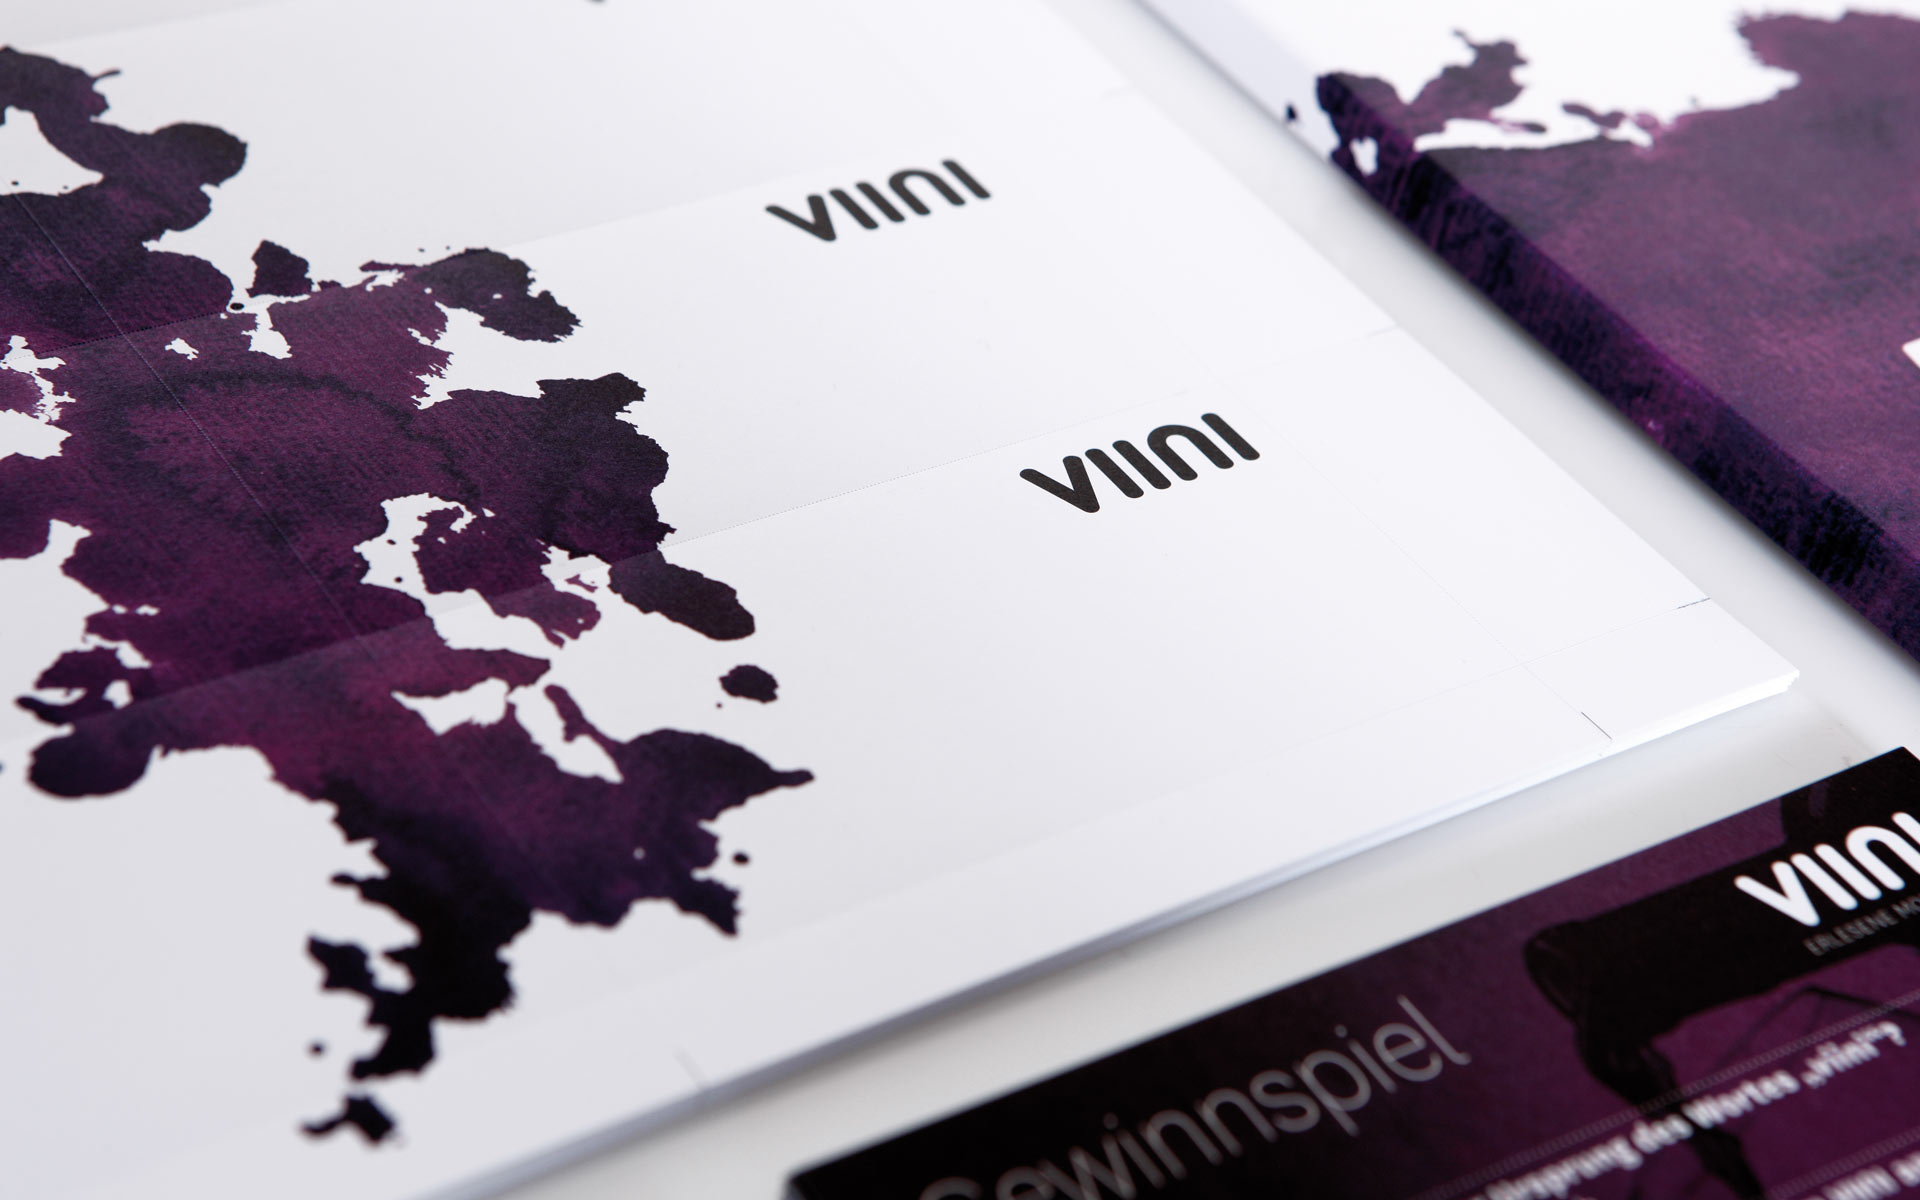 VIINI Brand Identity, Corporate Design, Logotype